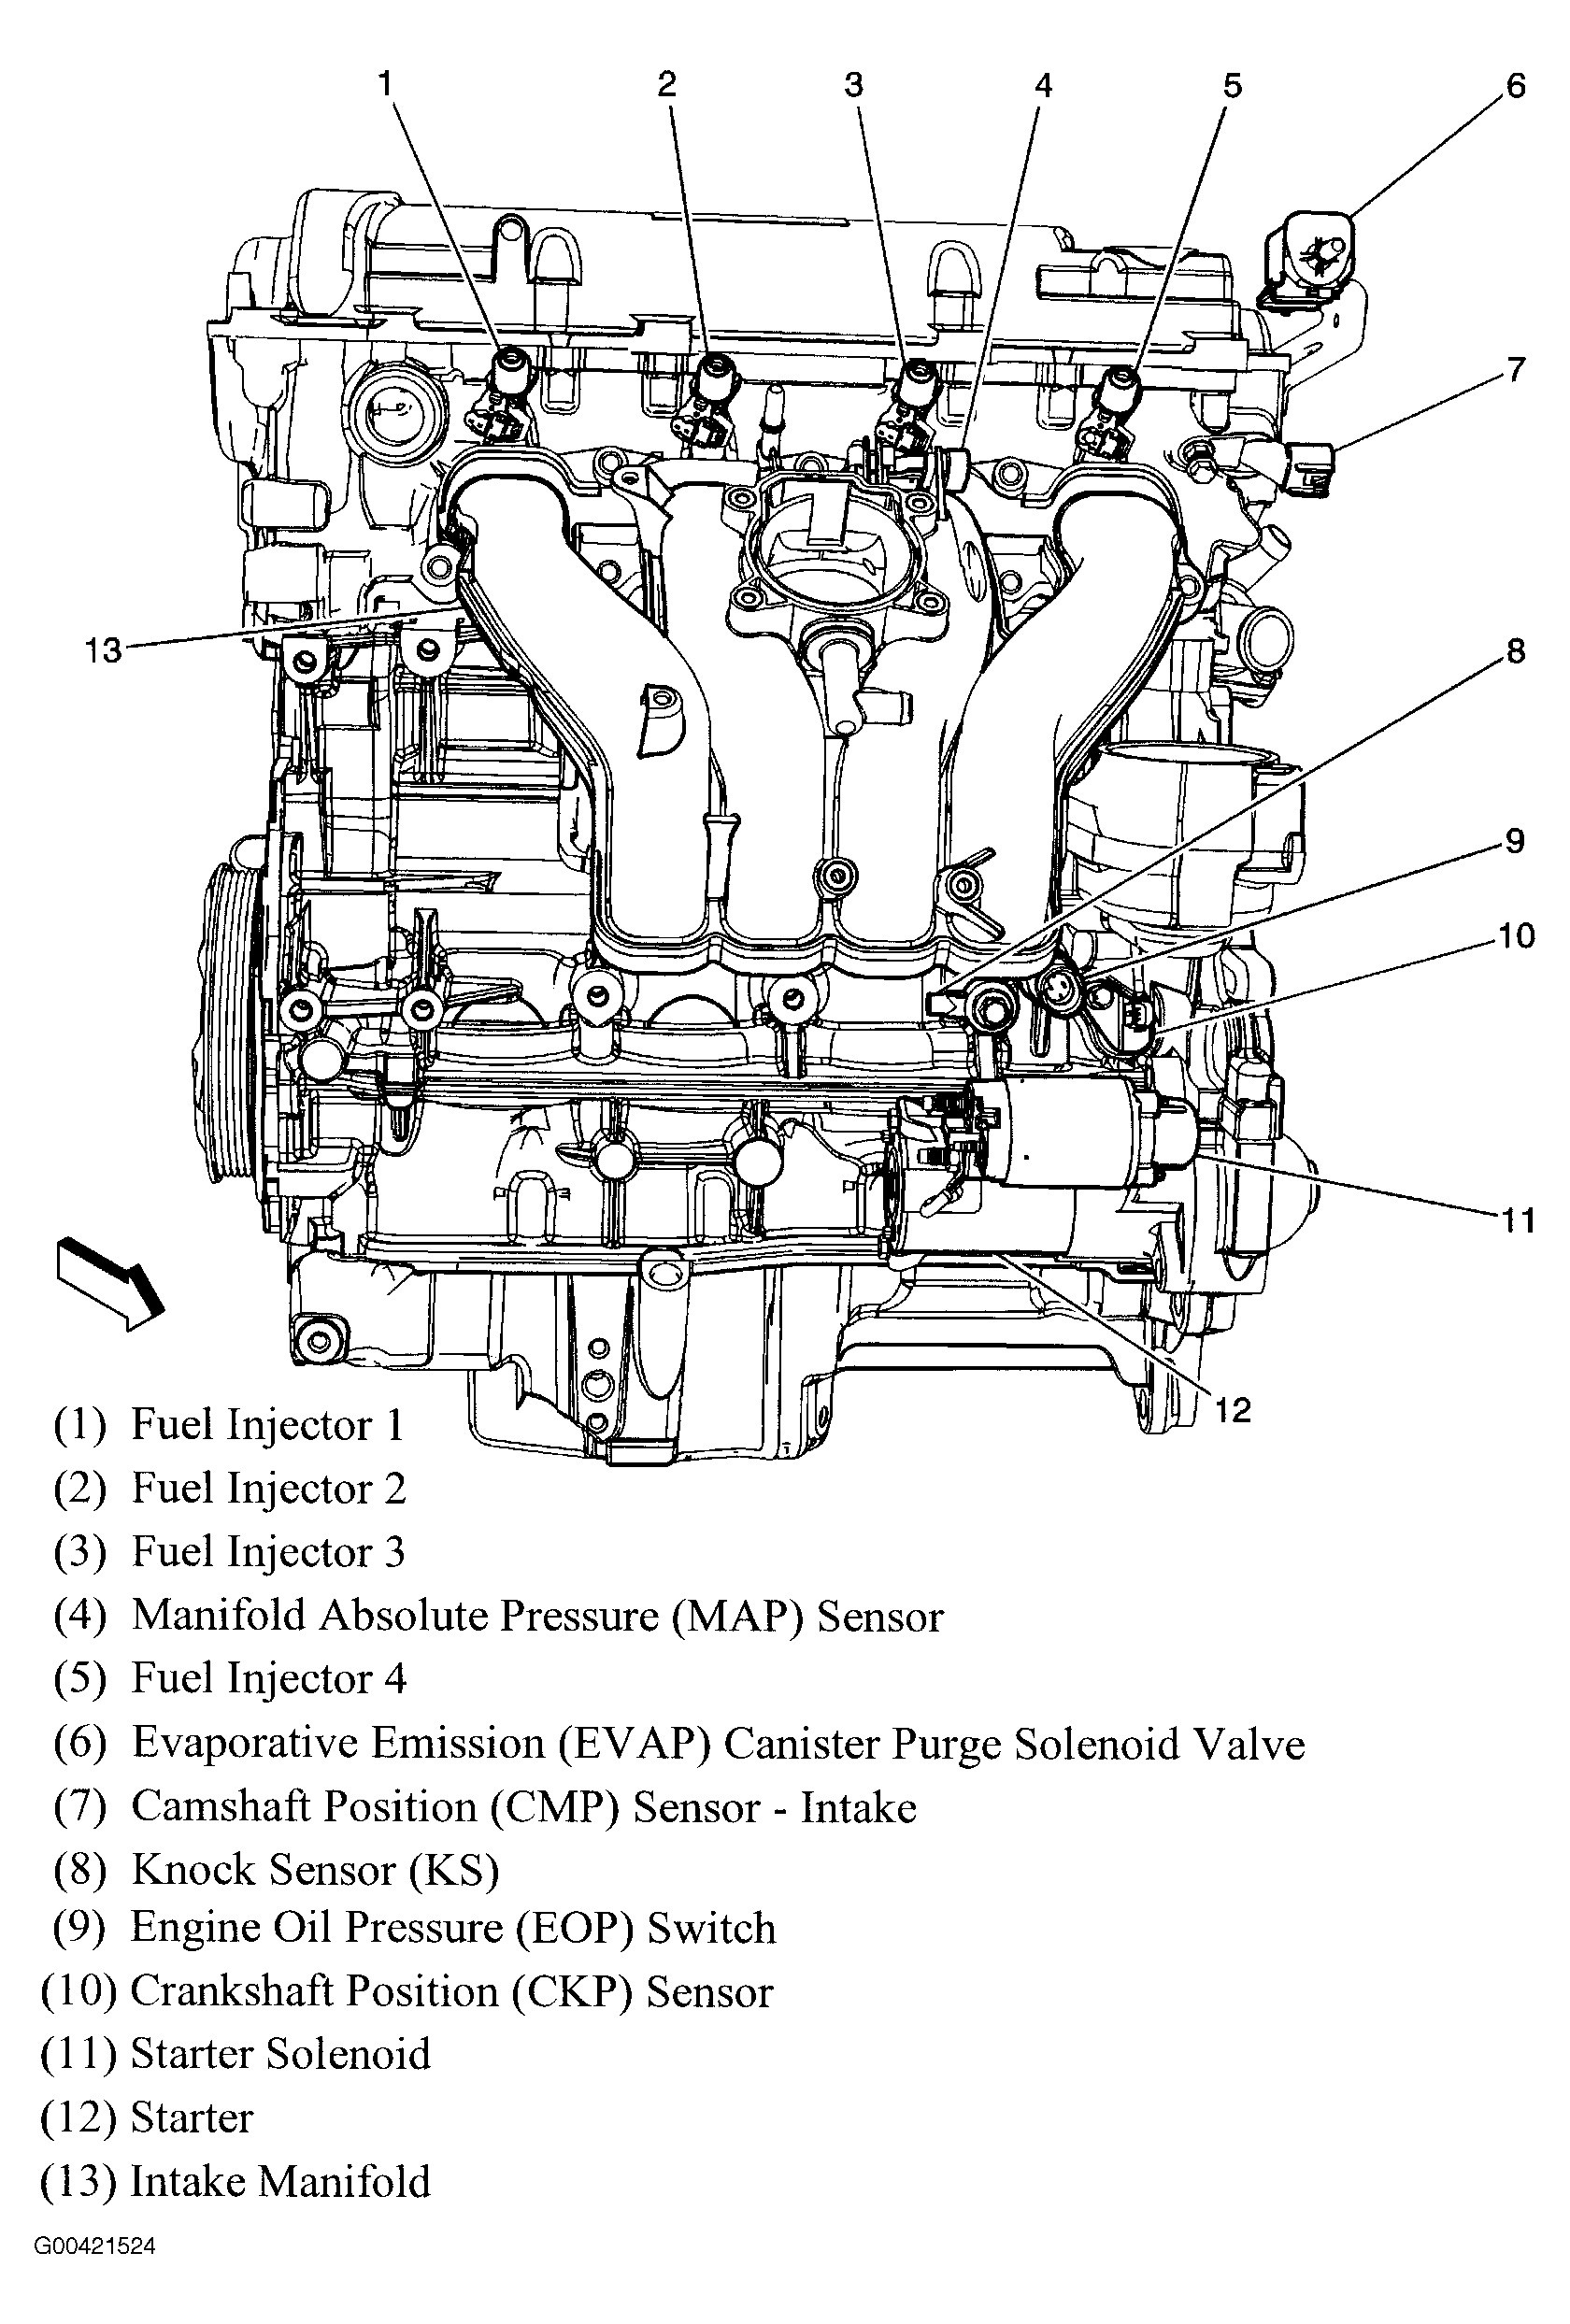 chevrolet ecotec engine diagram - wiring diagram schema form-shape -  form-shape.atmosphereconcept.it  atmosphereconcept.it